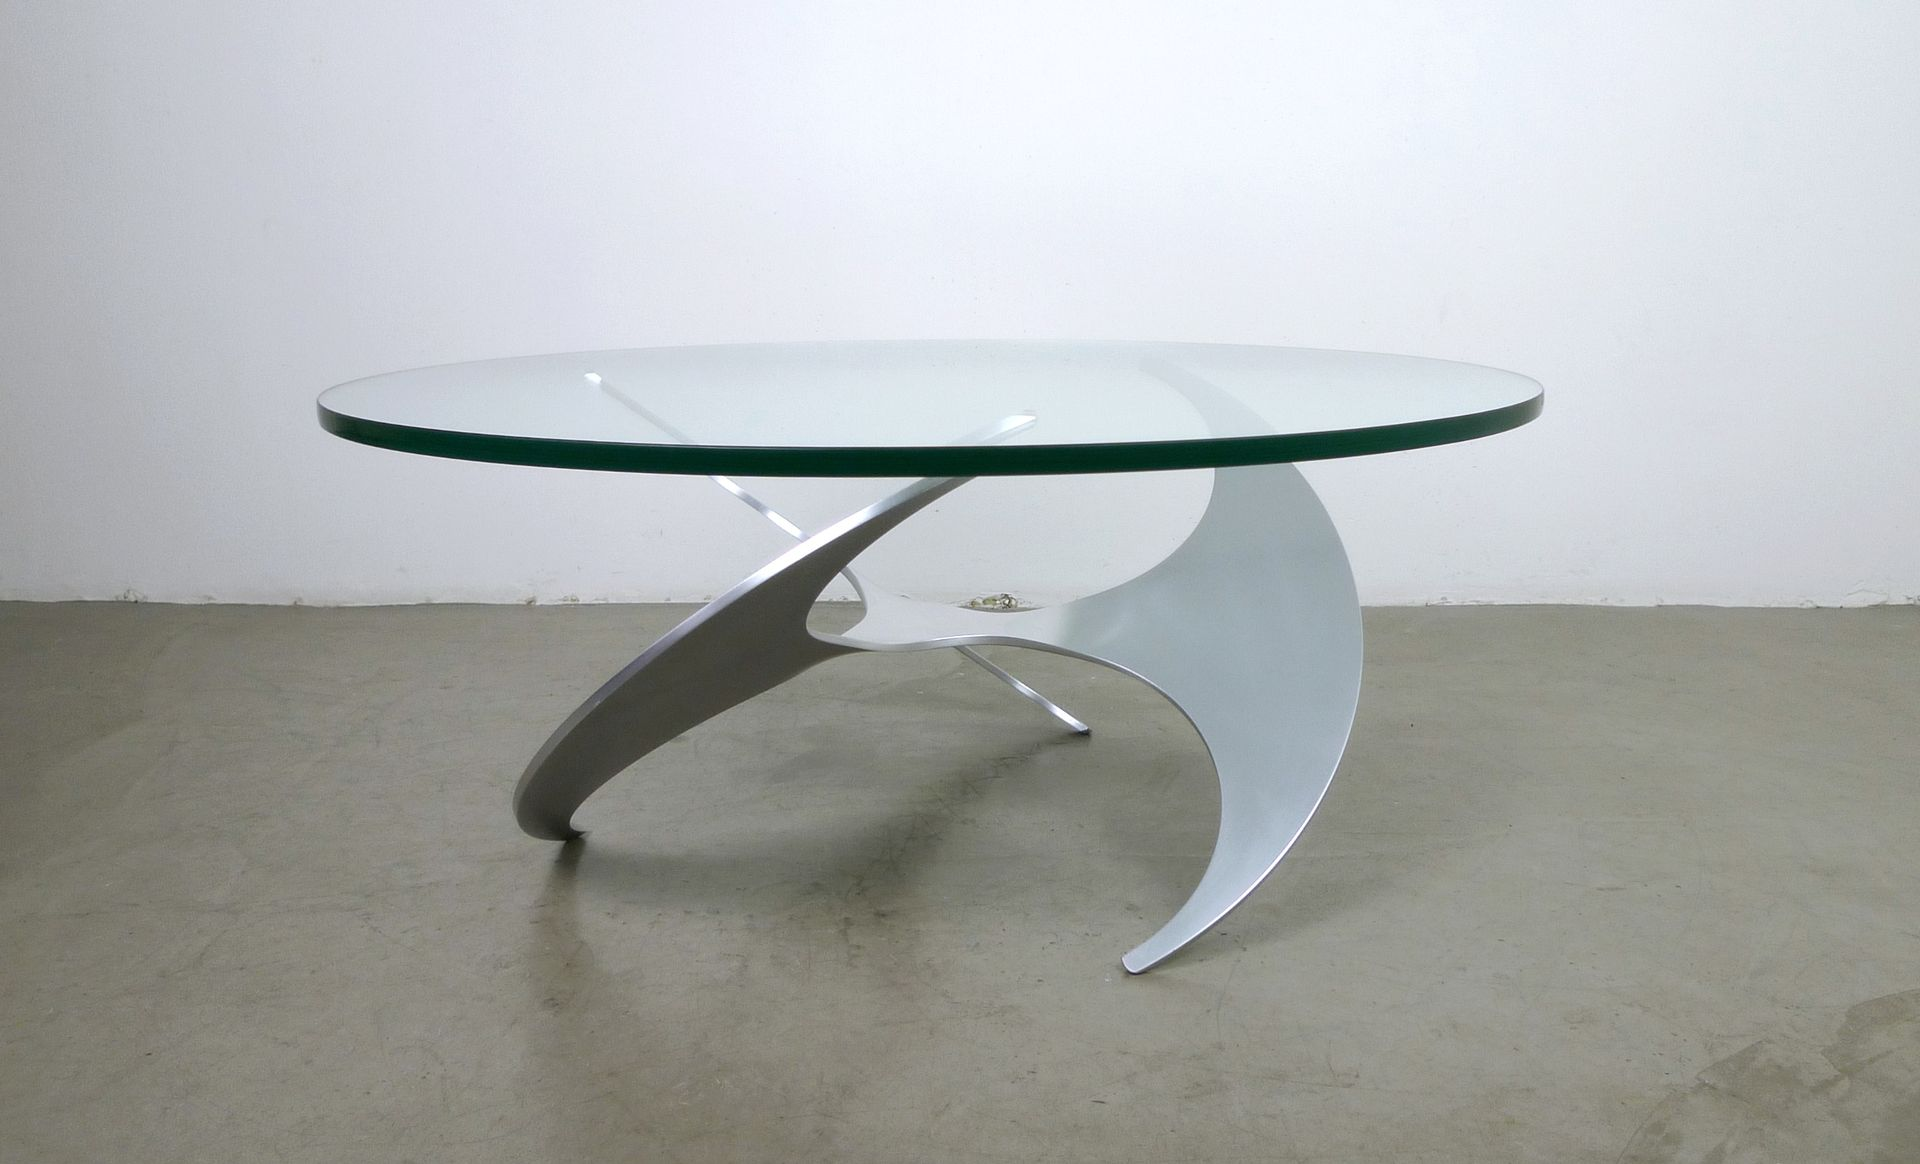 Esstische Ronald Schmitt K9 Propeller Coffee Table By Knut Hesterberg For Ronald Schmitt 1960s